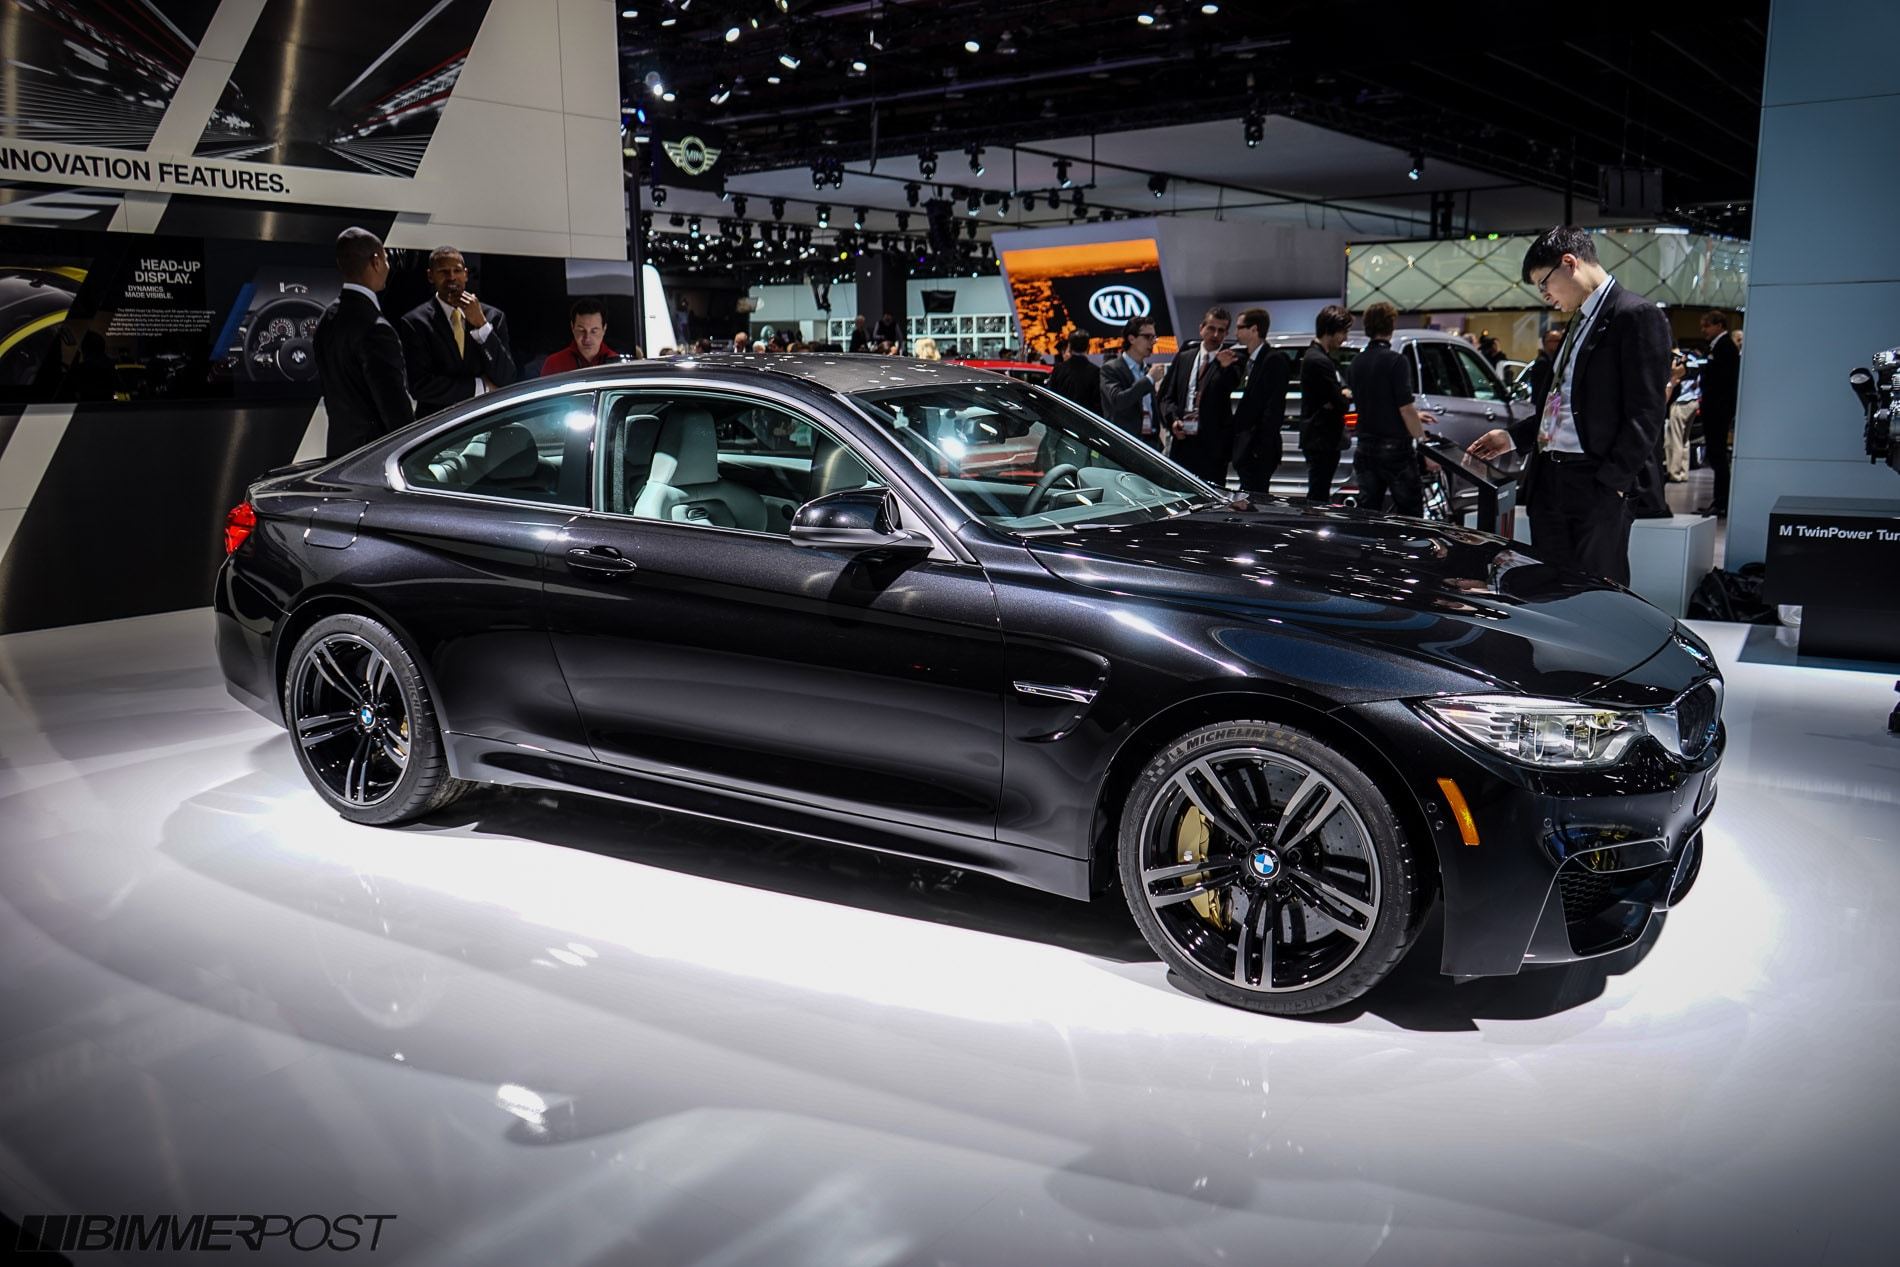 BMW Introduces Three Stunning M Series Cars at the Detroit Auto Show